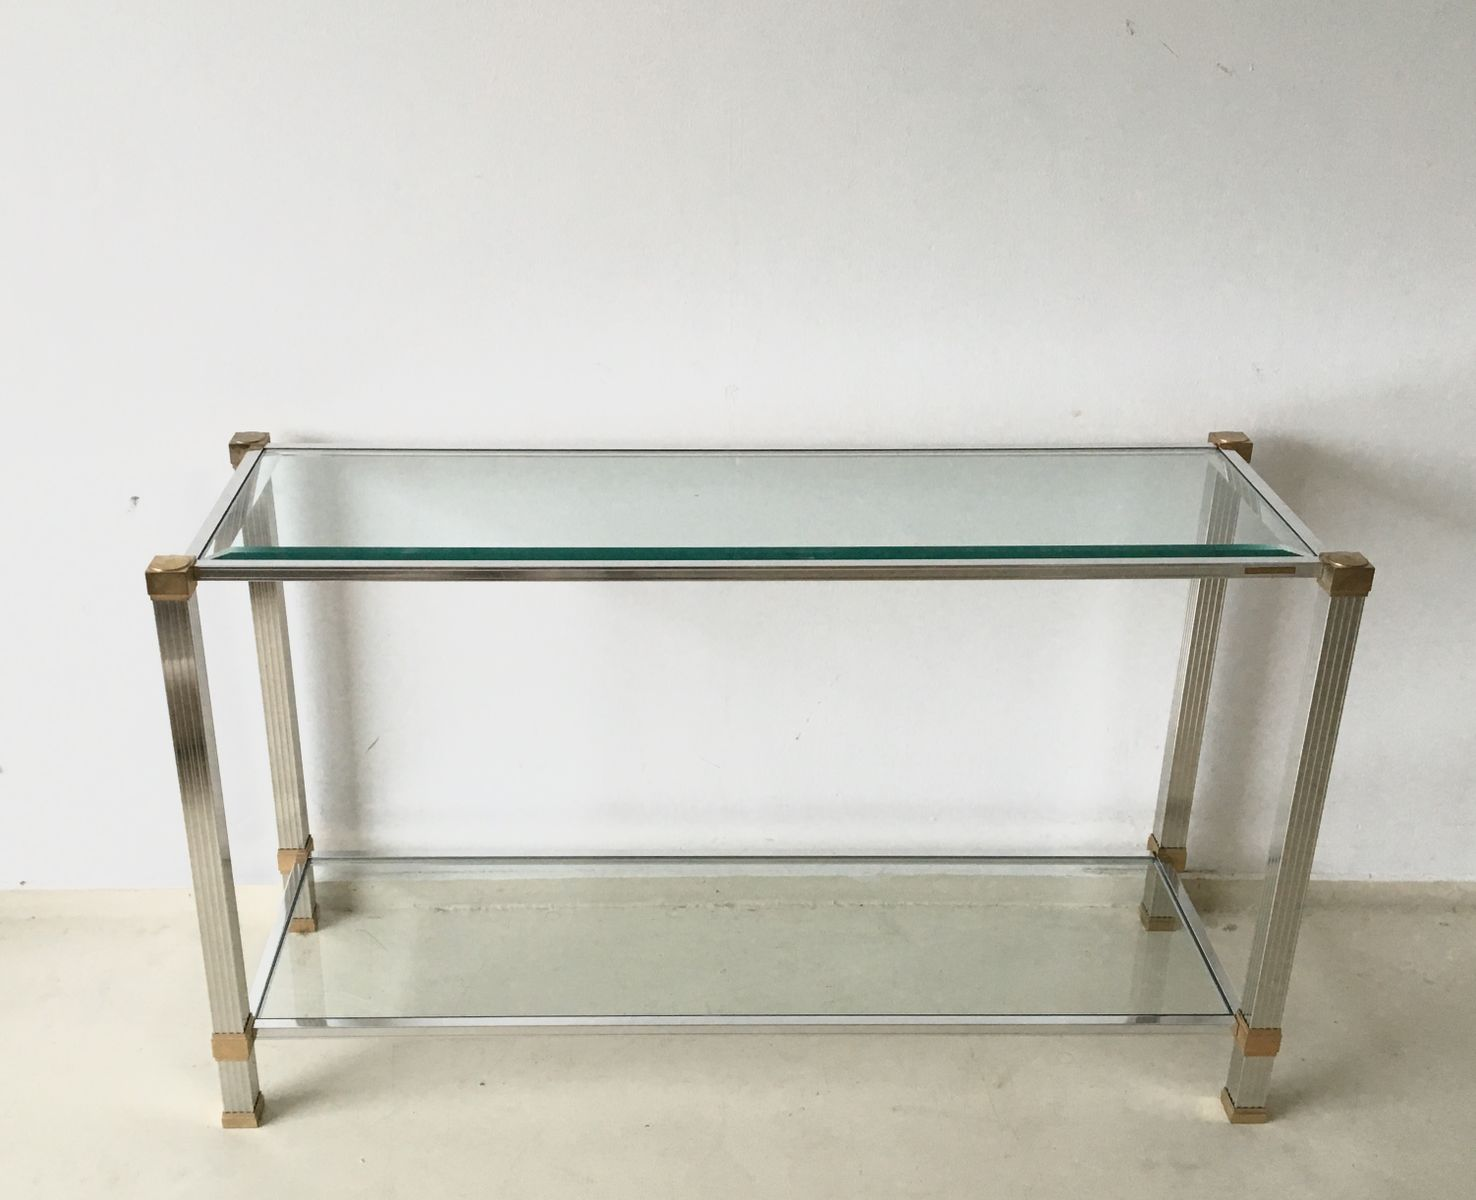 vintage french console table by pierre vandel for sale at pamono